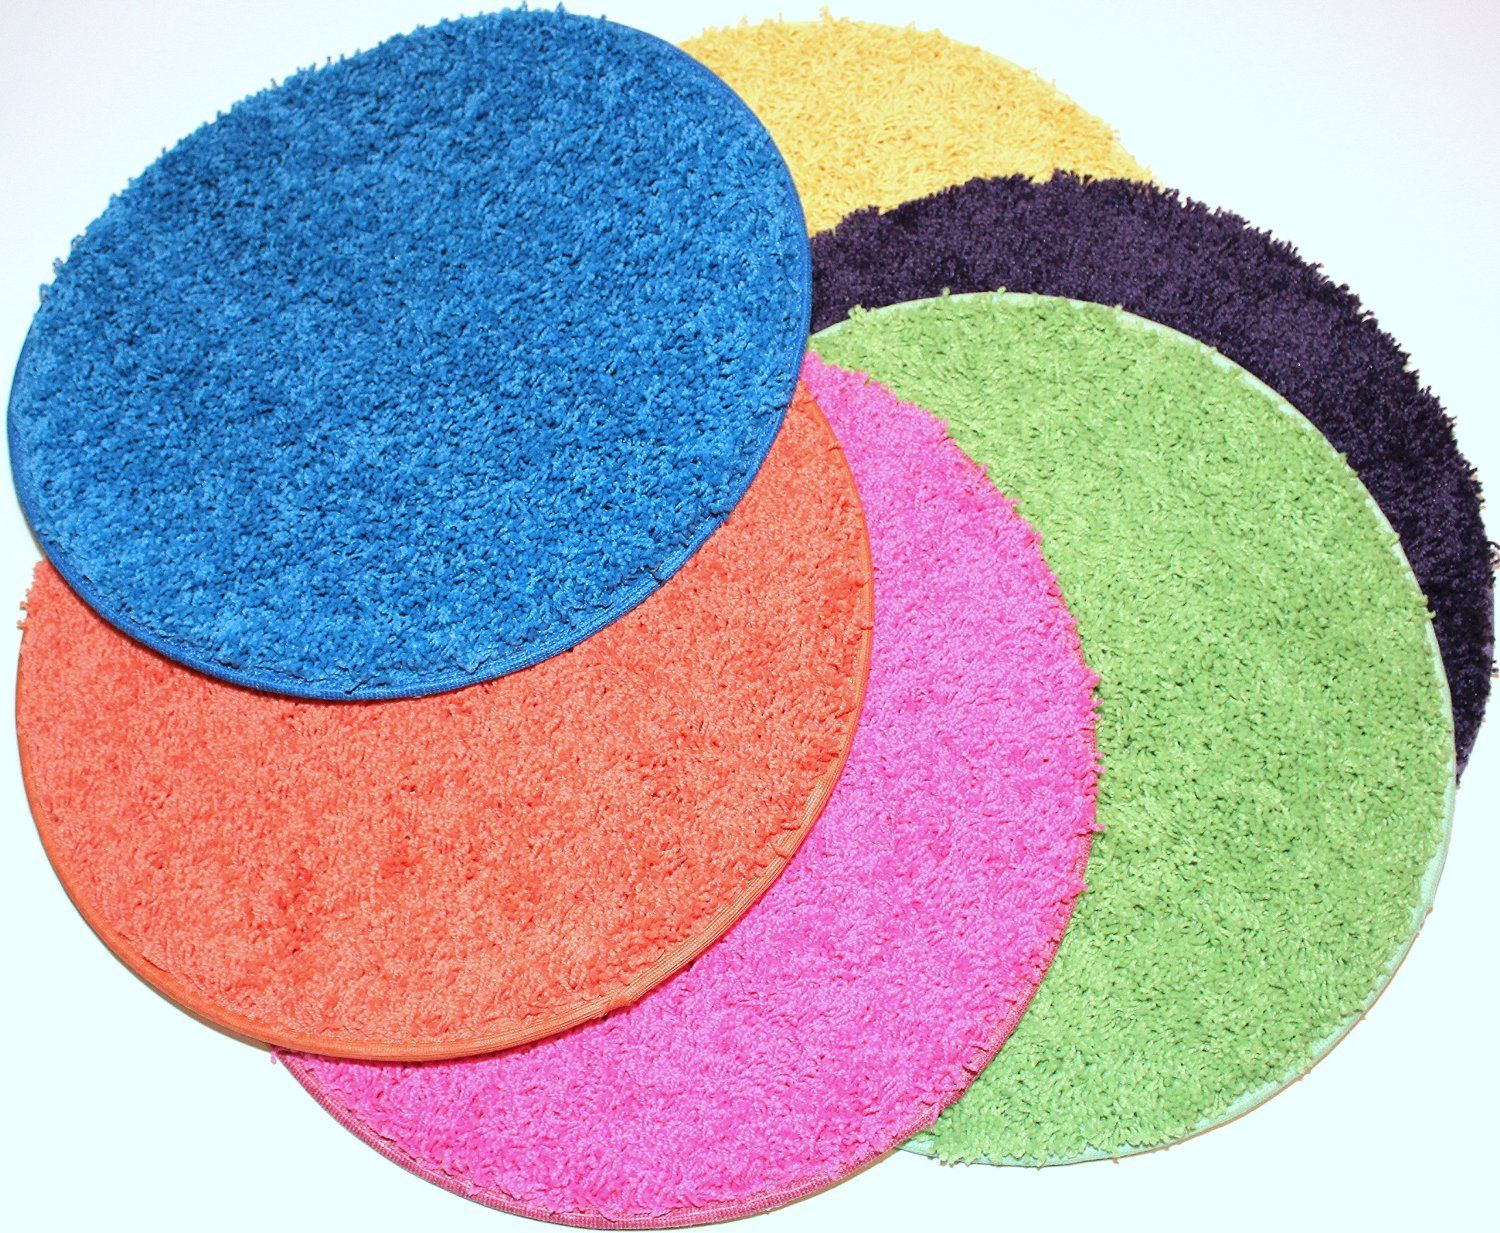 Carpet Circles Carpets For Circle Time Or Clroom Use